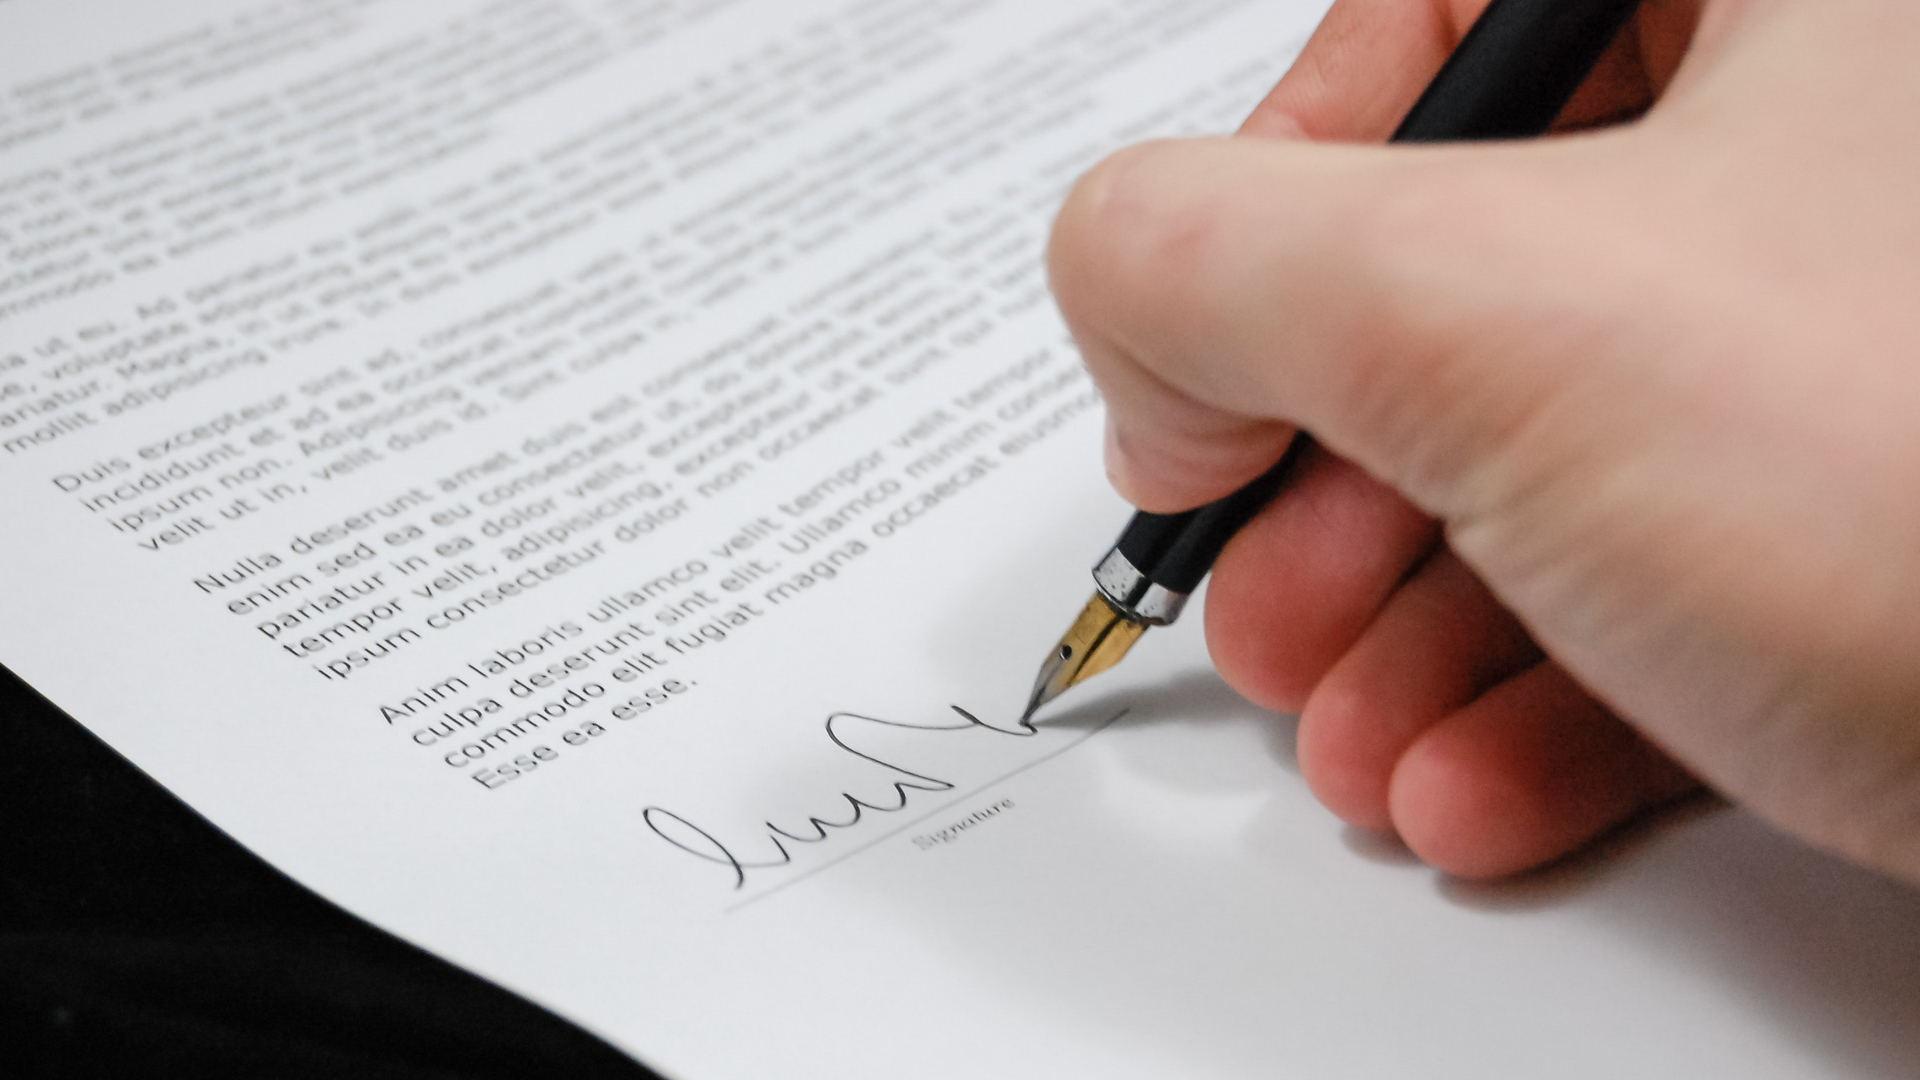 Signing documents with DigiSigner